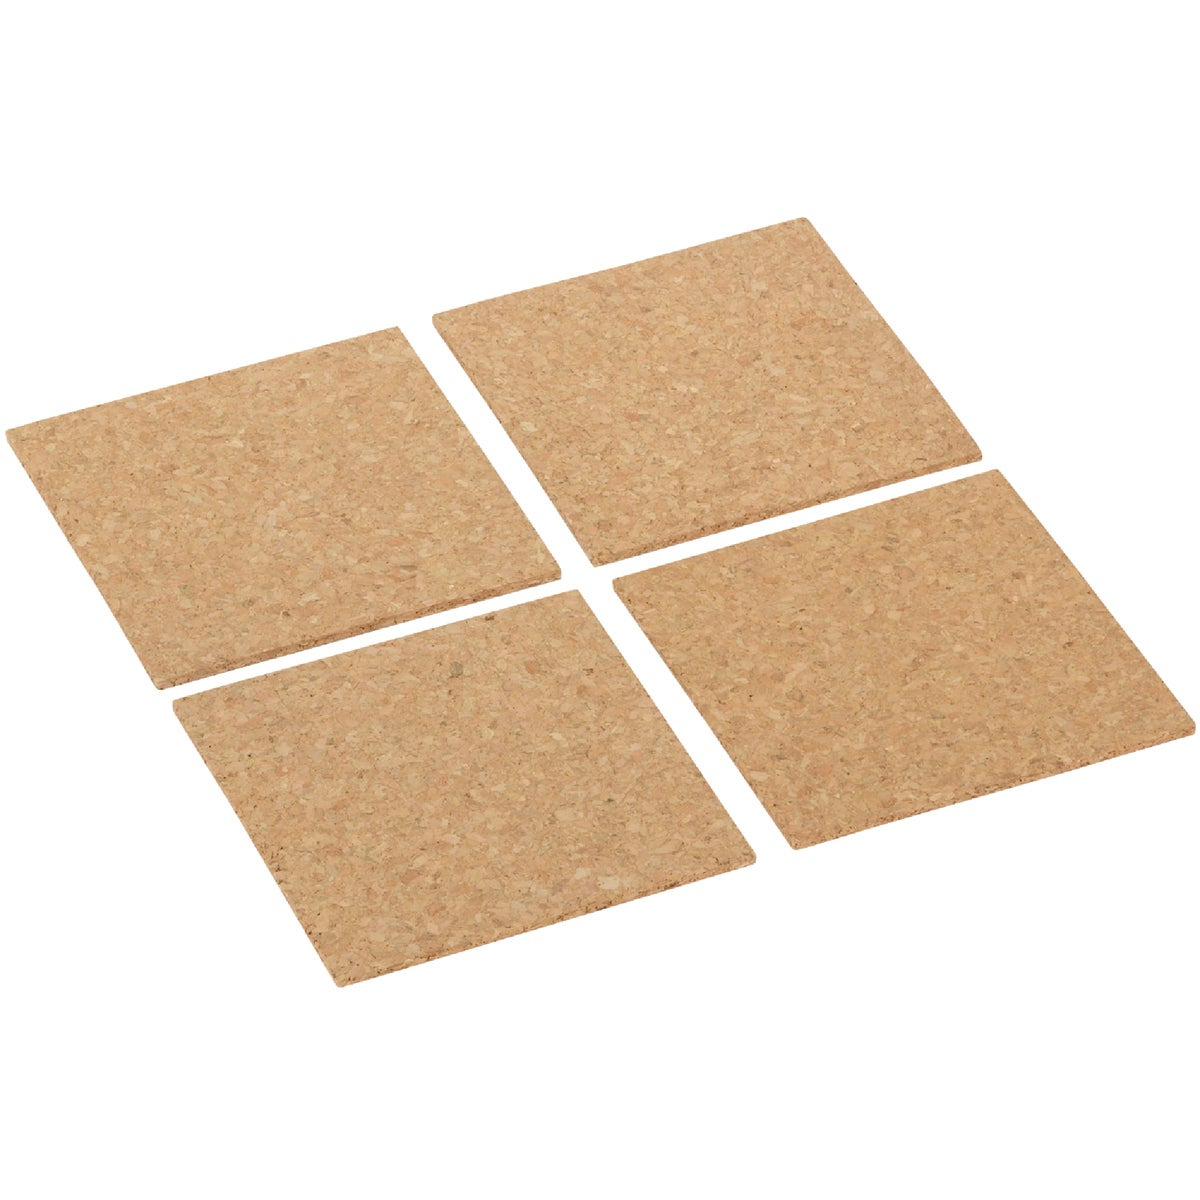 6X6 LIGHT TILE CORK - 72 by Board Dudes Inc